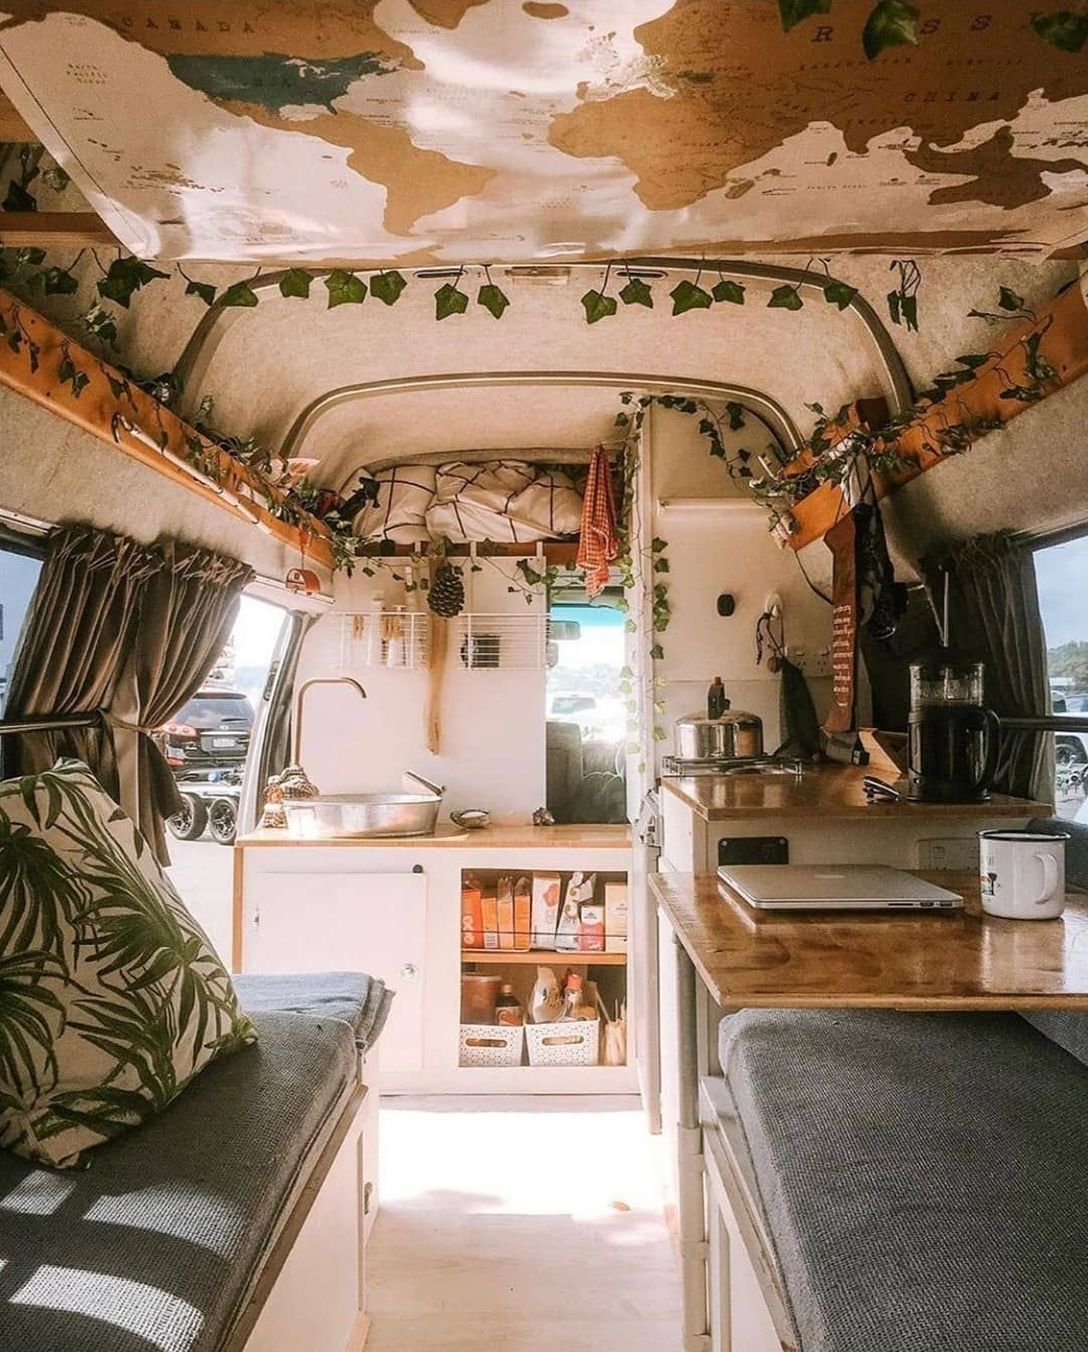 Photo of 21 Ideen für Ihr Camper Interior Design